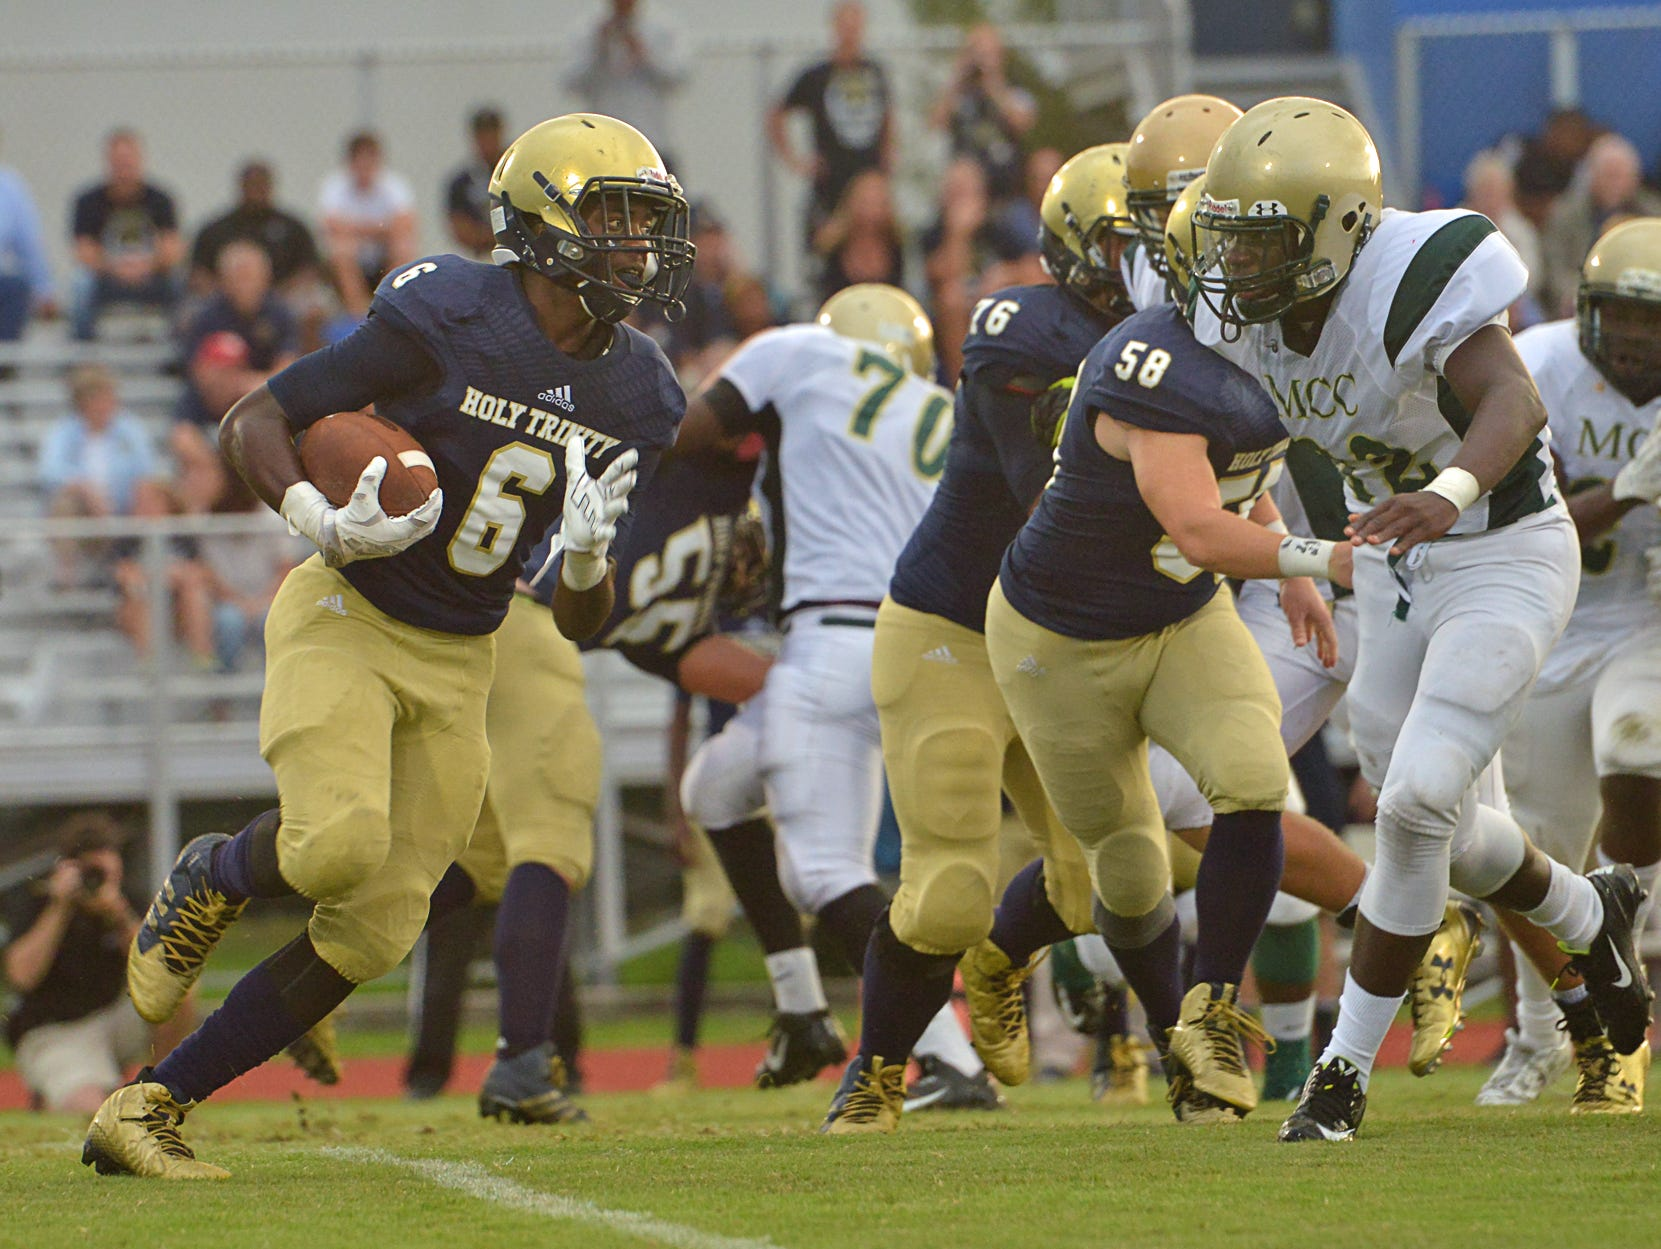 Jashaun Corbin is FLORIDA TODAY's Athlete of the Week for the Week of Oct. 5-11.